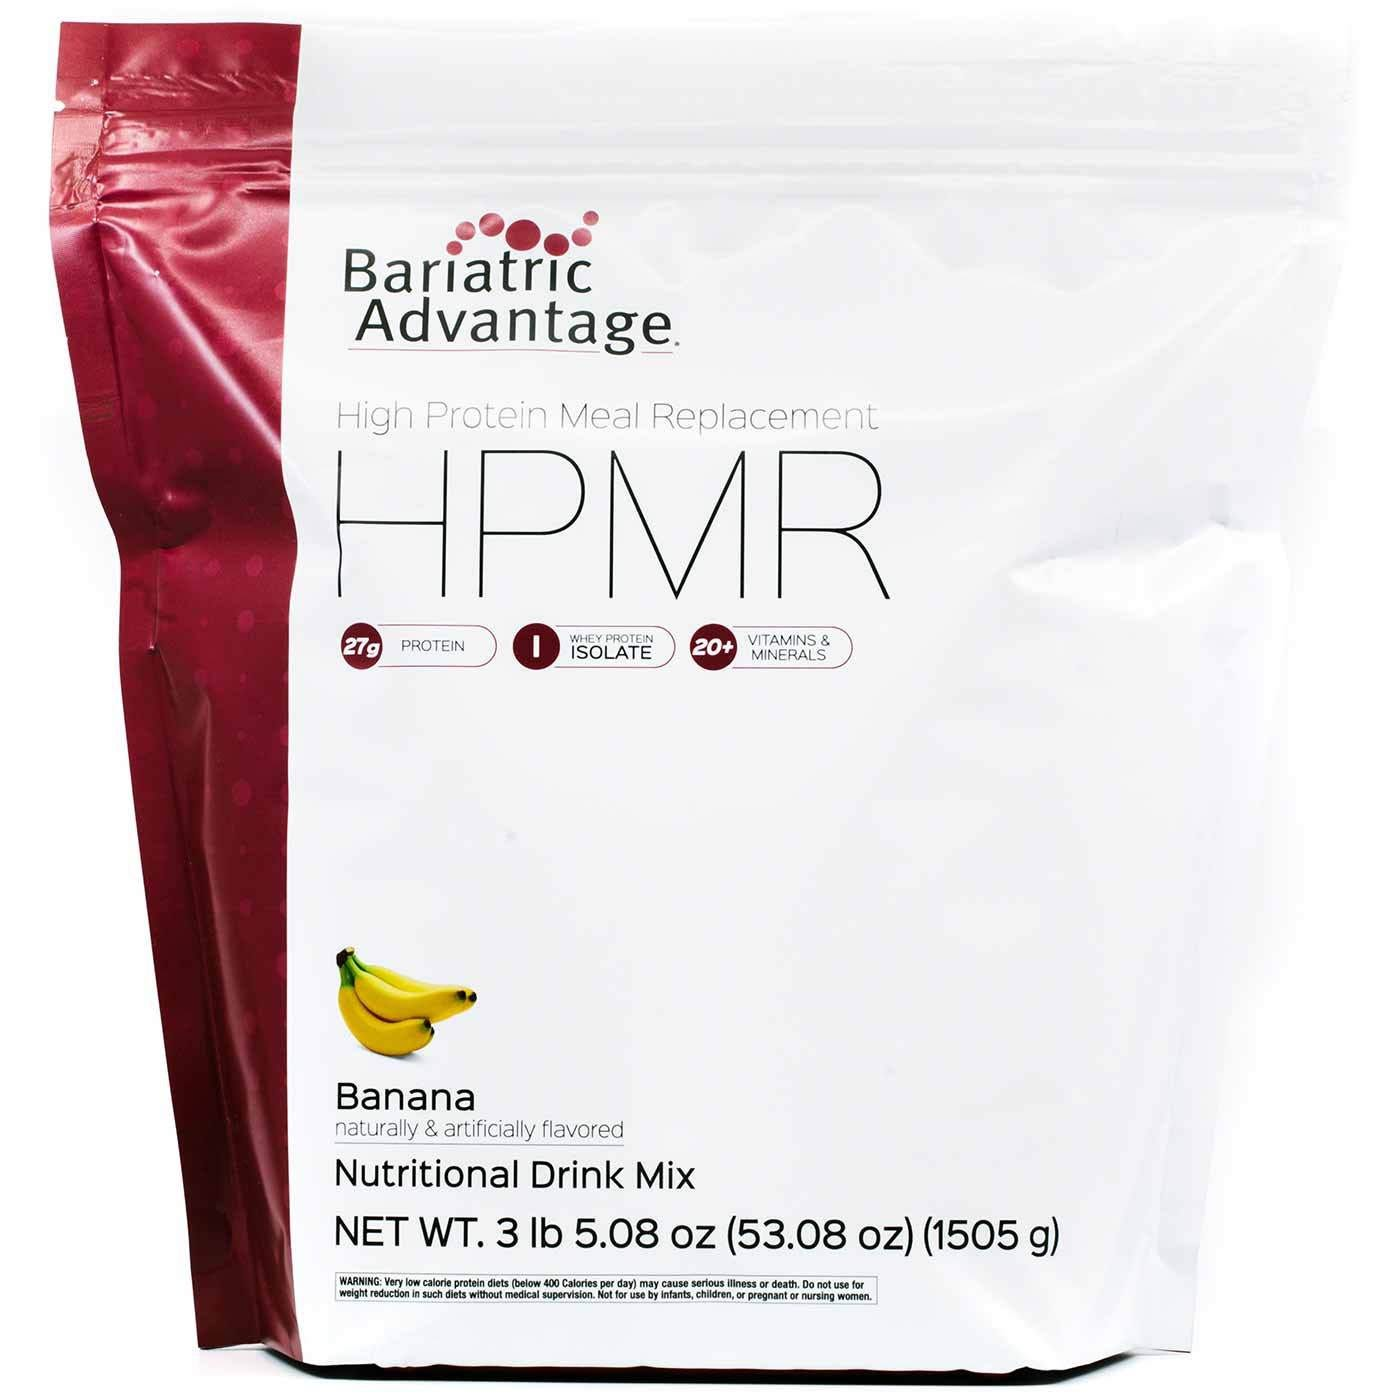 Bariatric Advantage High Protein Meal Replacement, Banana (53oz)